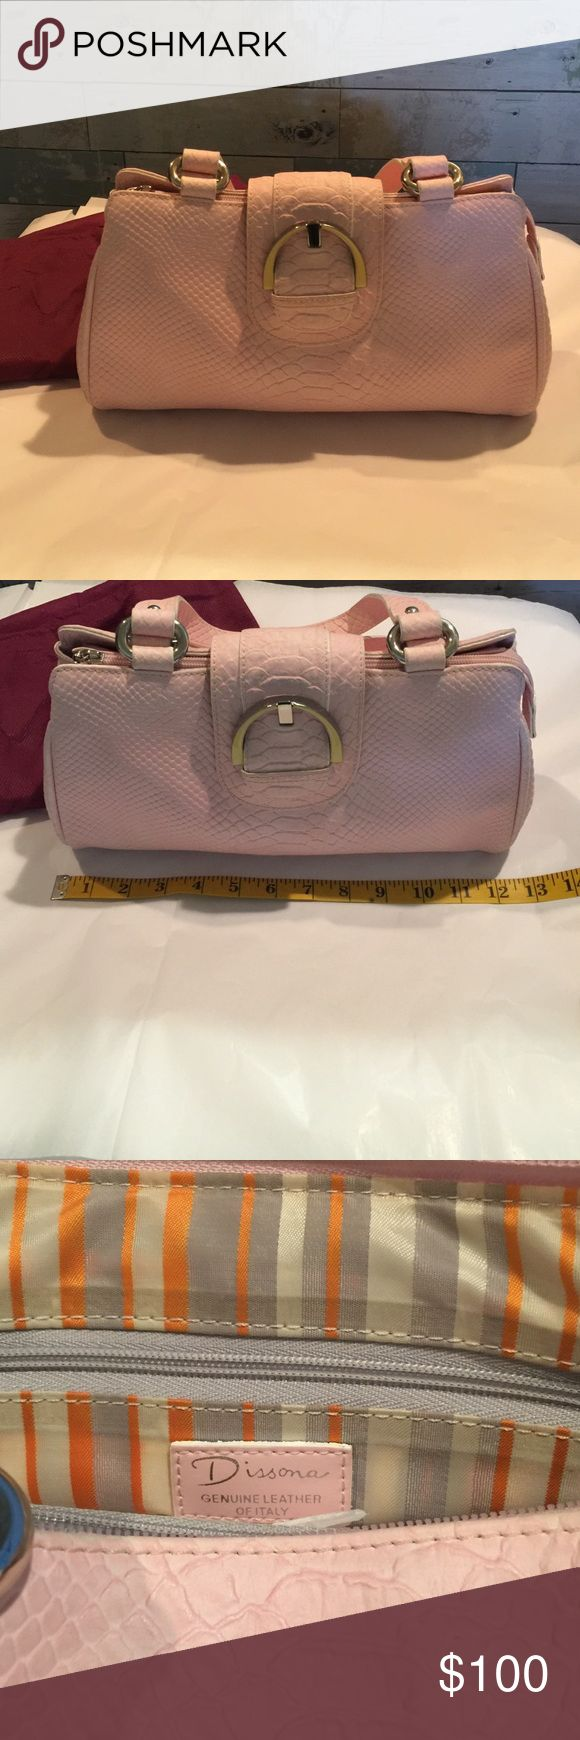 """Dissona leather handbag light pink Dissona leather handbag light pink. EUC mild wear on side of straps. Dimensions: 12"""" long 7"""" deep 3"""" max width. Clean interior with 2 easy accessible pockets, and 2 zippered pockets. Very cute bag!! Dissona Bags Mini Bags"""